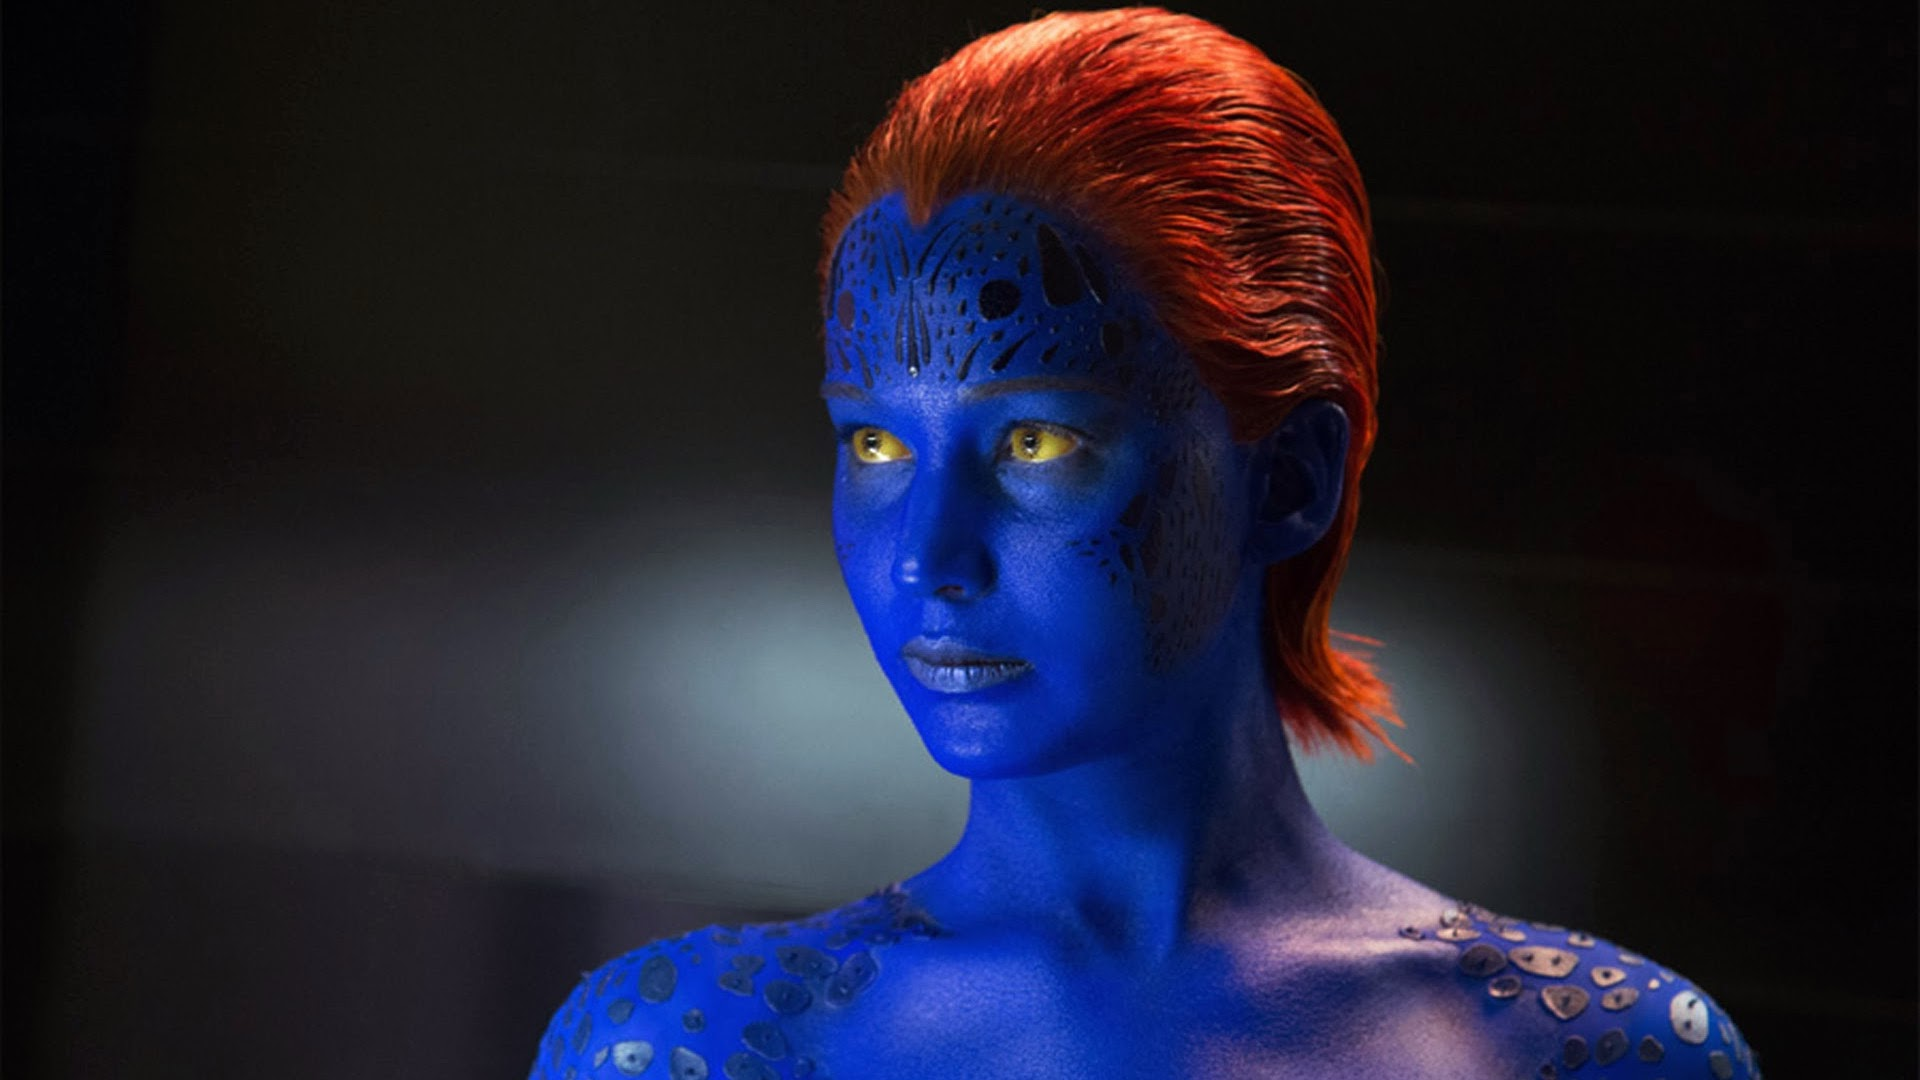 mystique jennifer lawrence x men days of future past 2014 movie hd    X Men Days Of Future Past Mystique Jennifer Lawrence